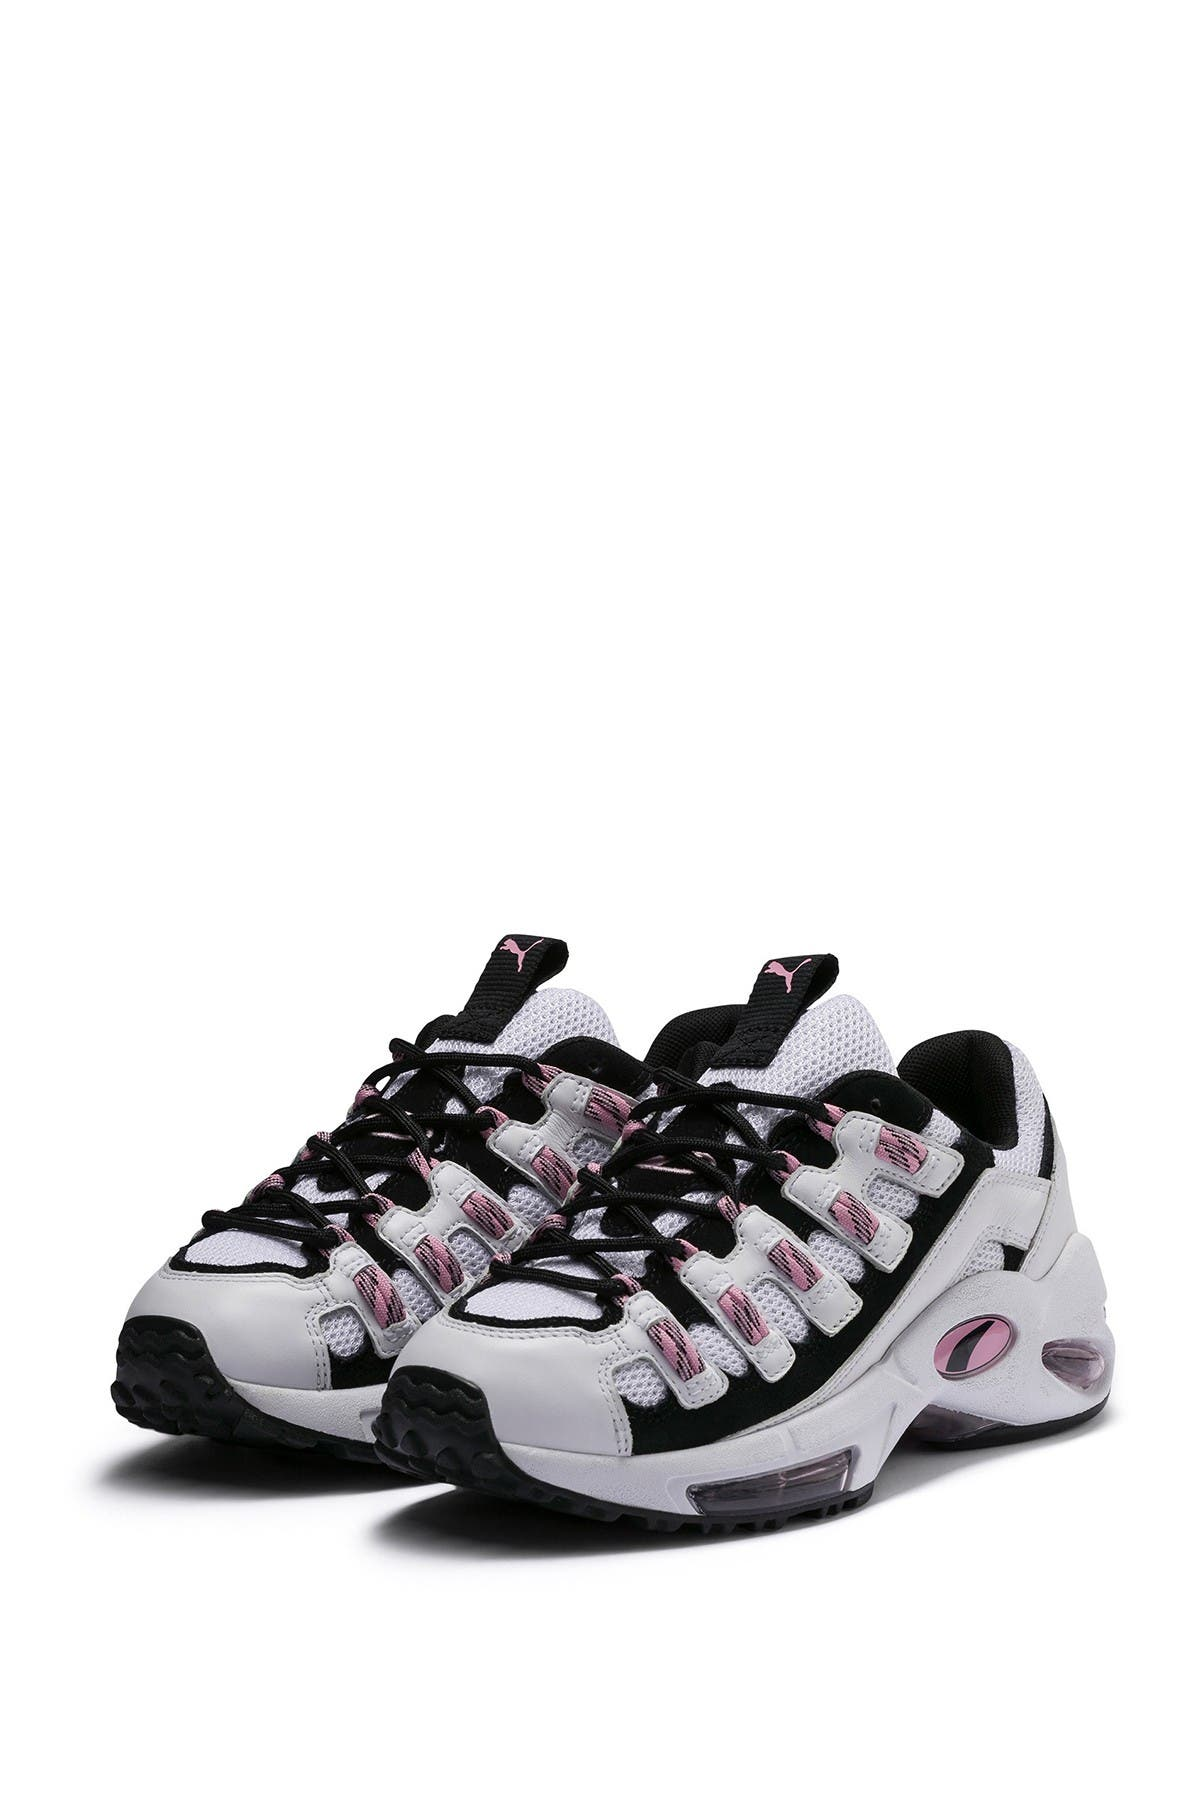 Image of PUMA Cell Endura Sneaker